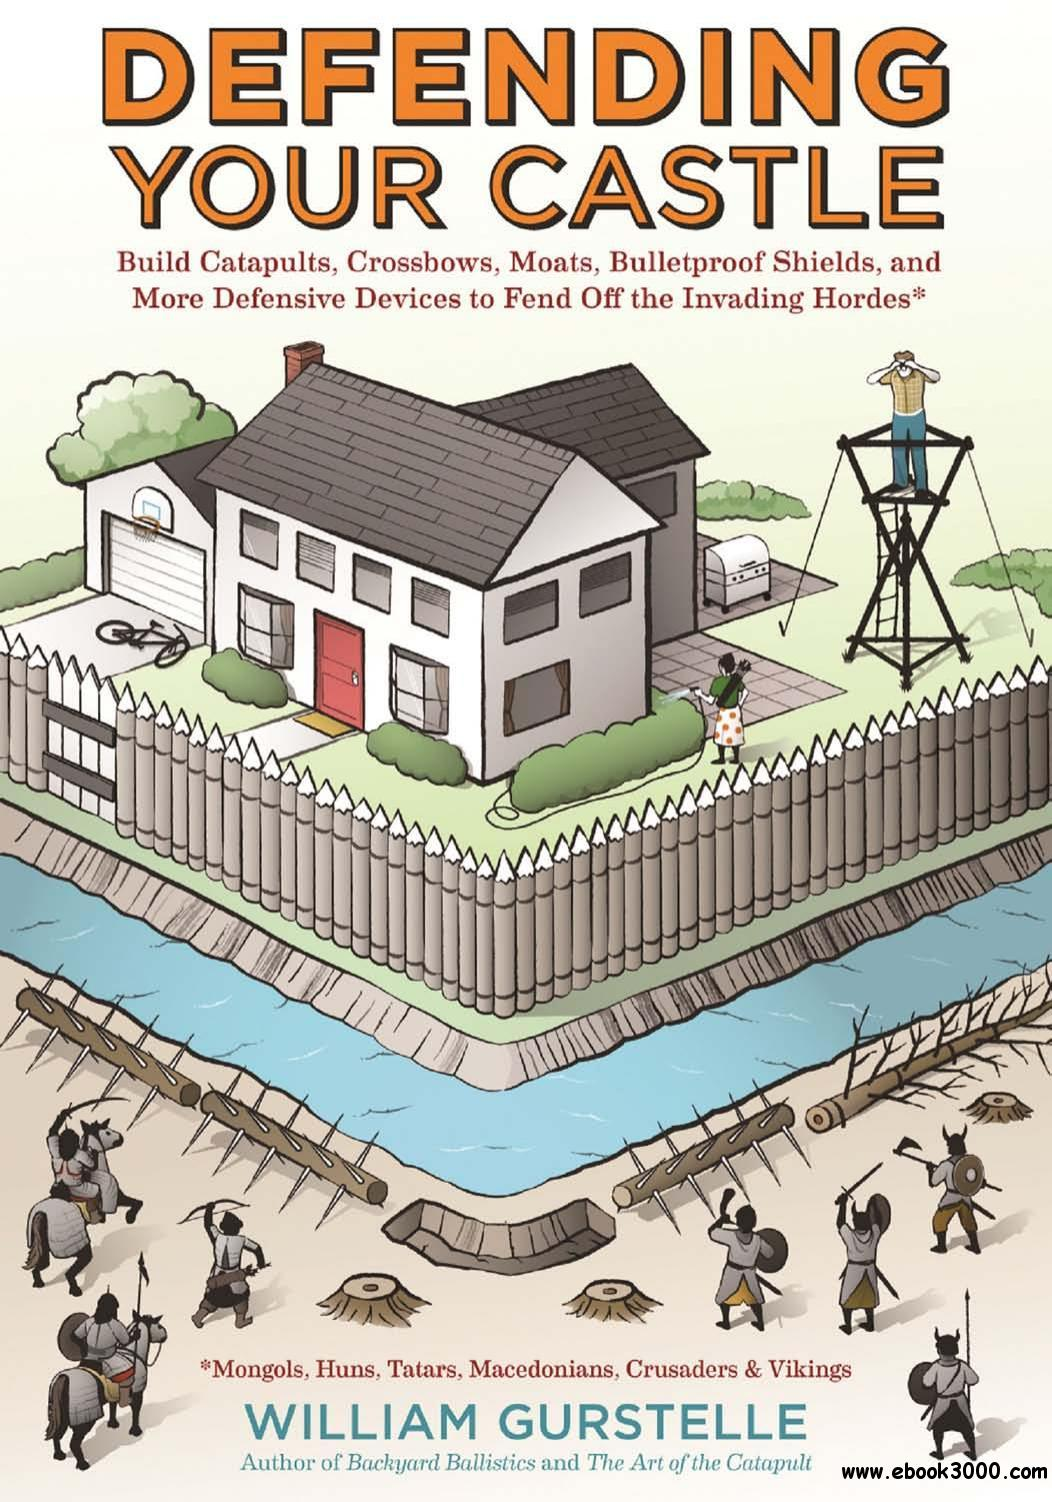 Defending Your Castle: Build Catapults, Crossbows, Moats, Bulletproof Shields, and More Defensive Devices free download